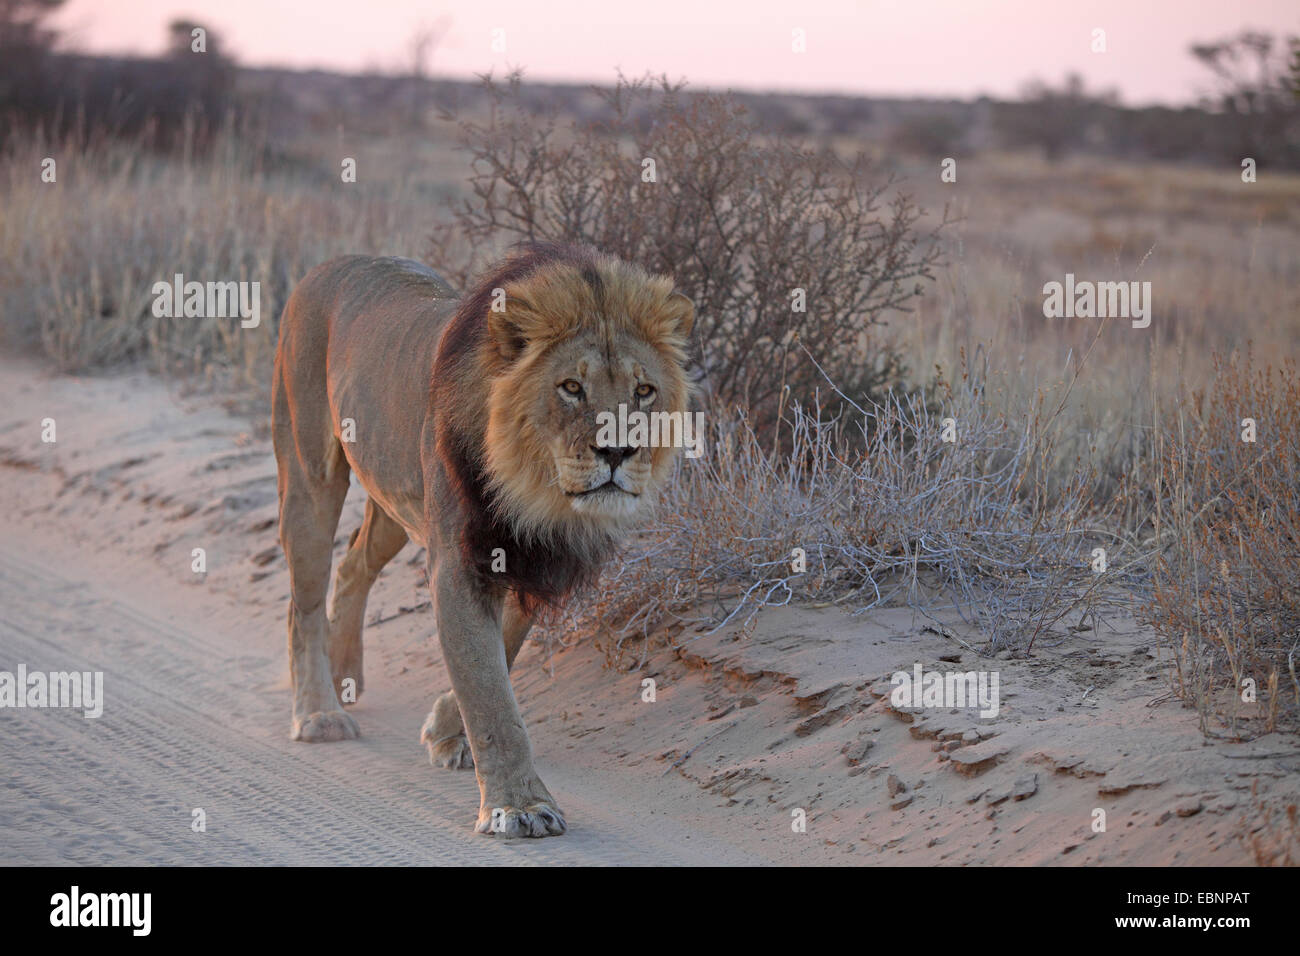 lion (Panthera leo), male walking on a sand track before sunrise, South Africa, Kgalagadi Transfrontier National - Stock Image